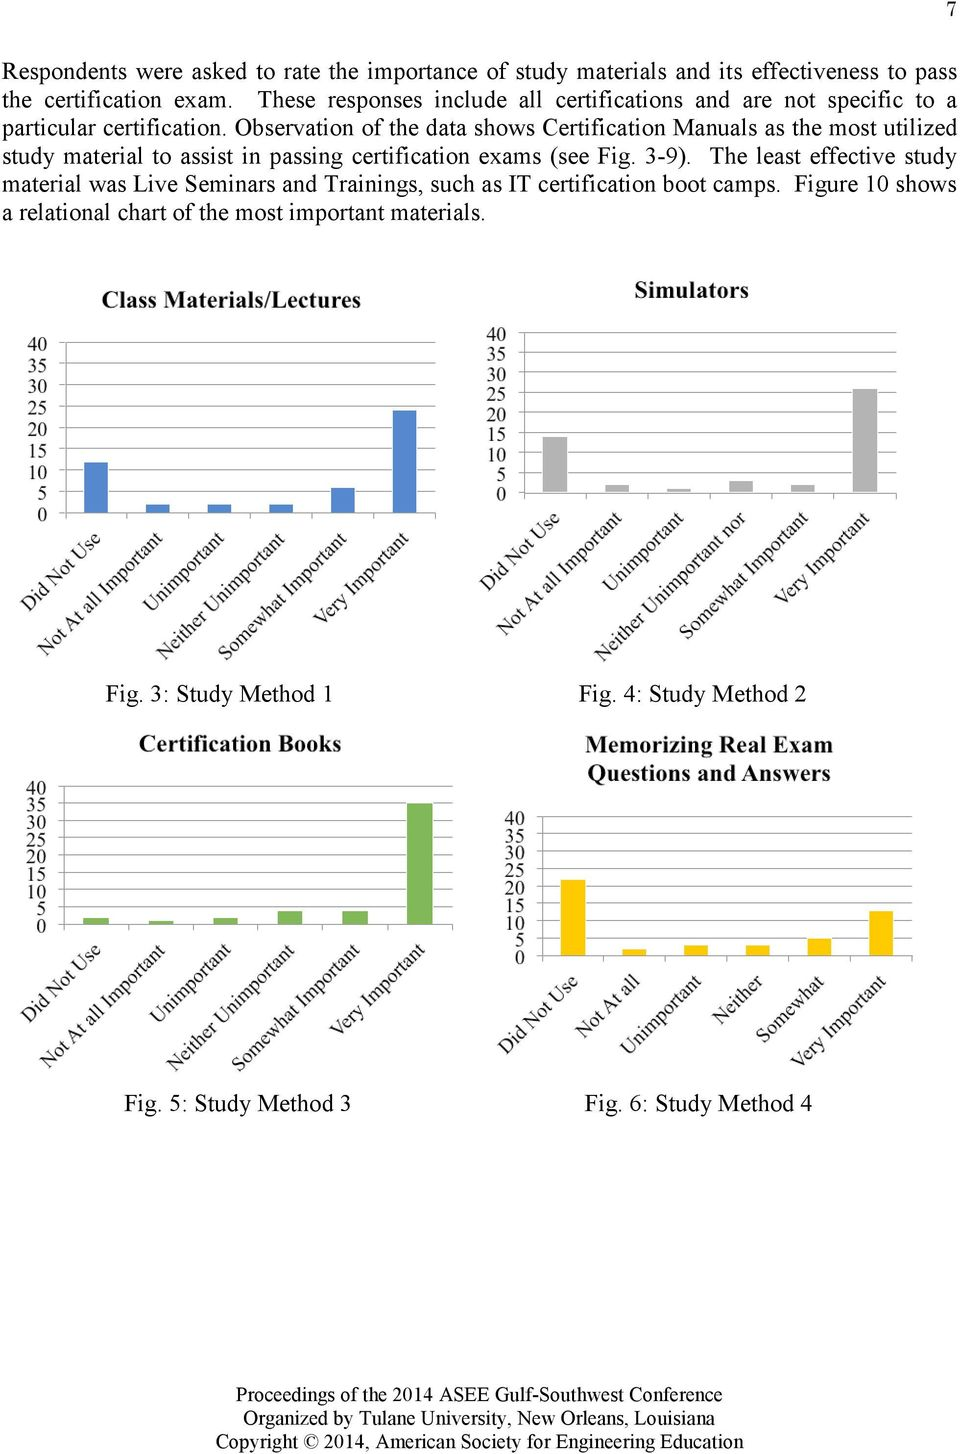 Observation of the data shows Certification Manuals as the most utilized study material to assist in passing certification exams (see Fig. 3-9).